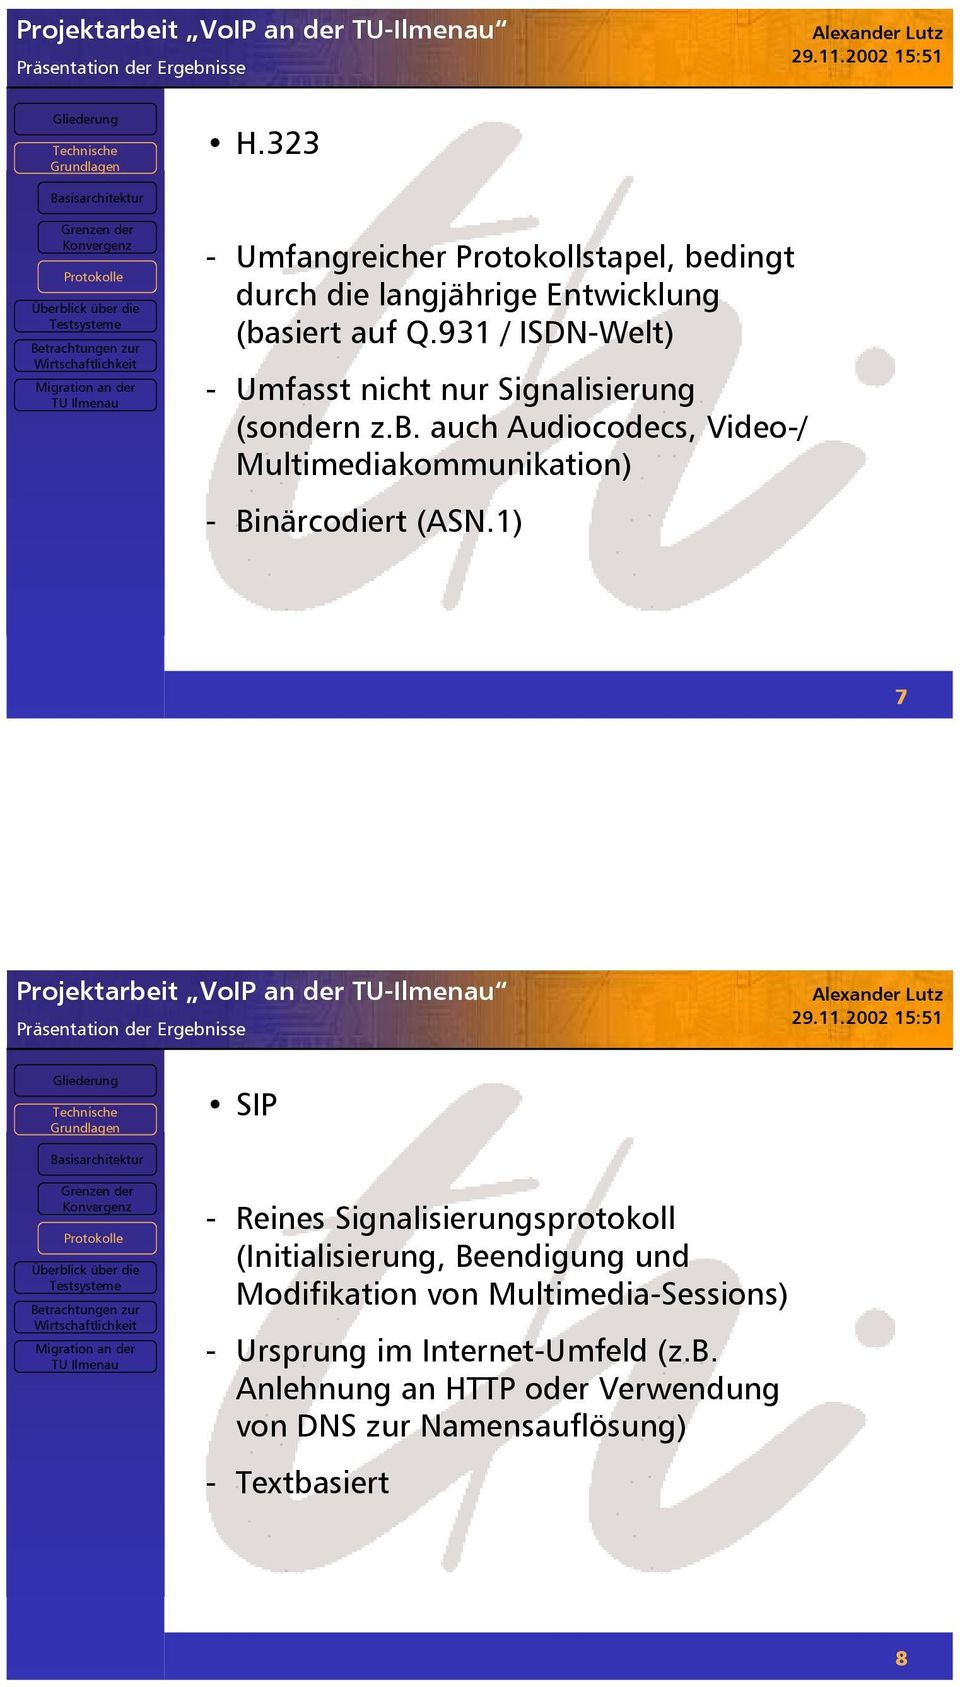 auch Audiocodecs, Video-/ Multimediakommunikation) - Binärcodiert (ASN.